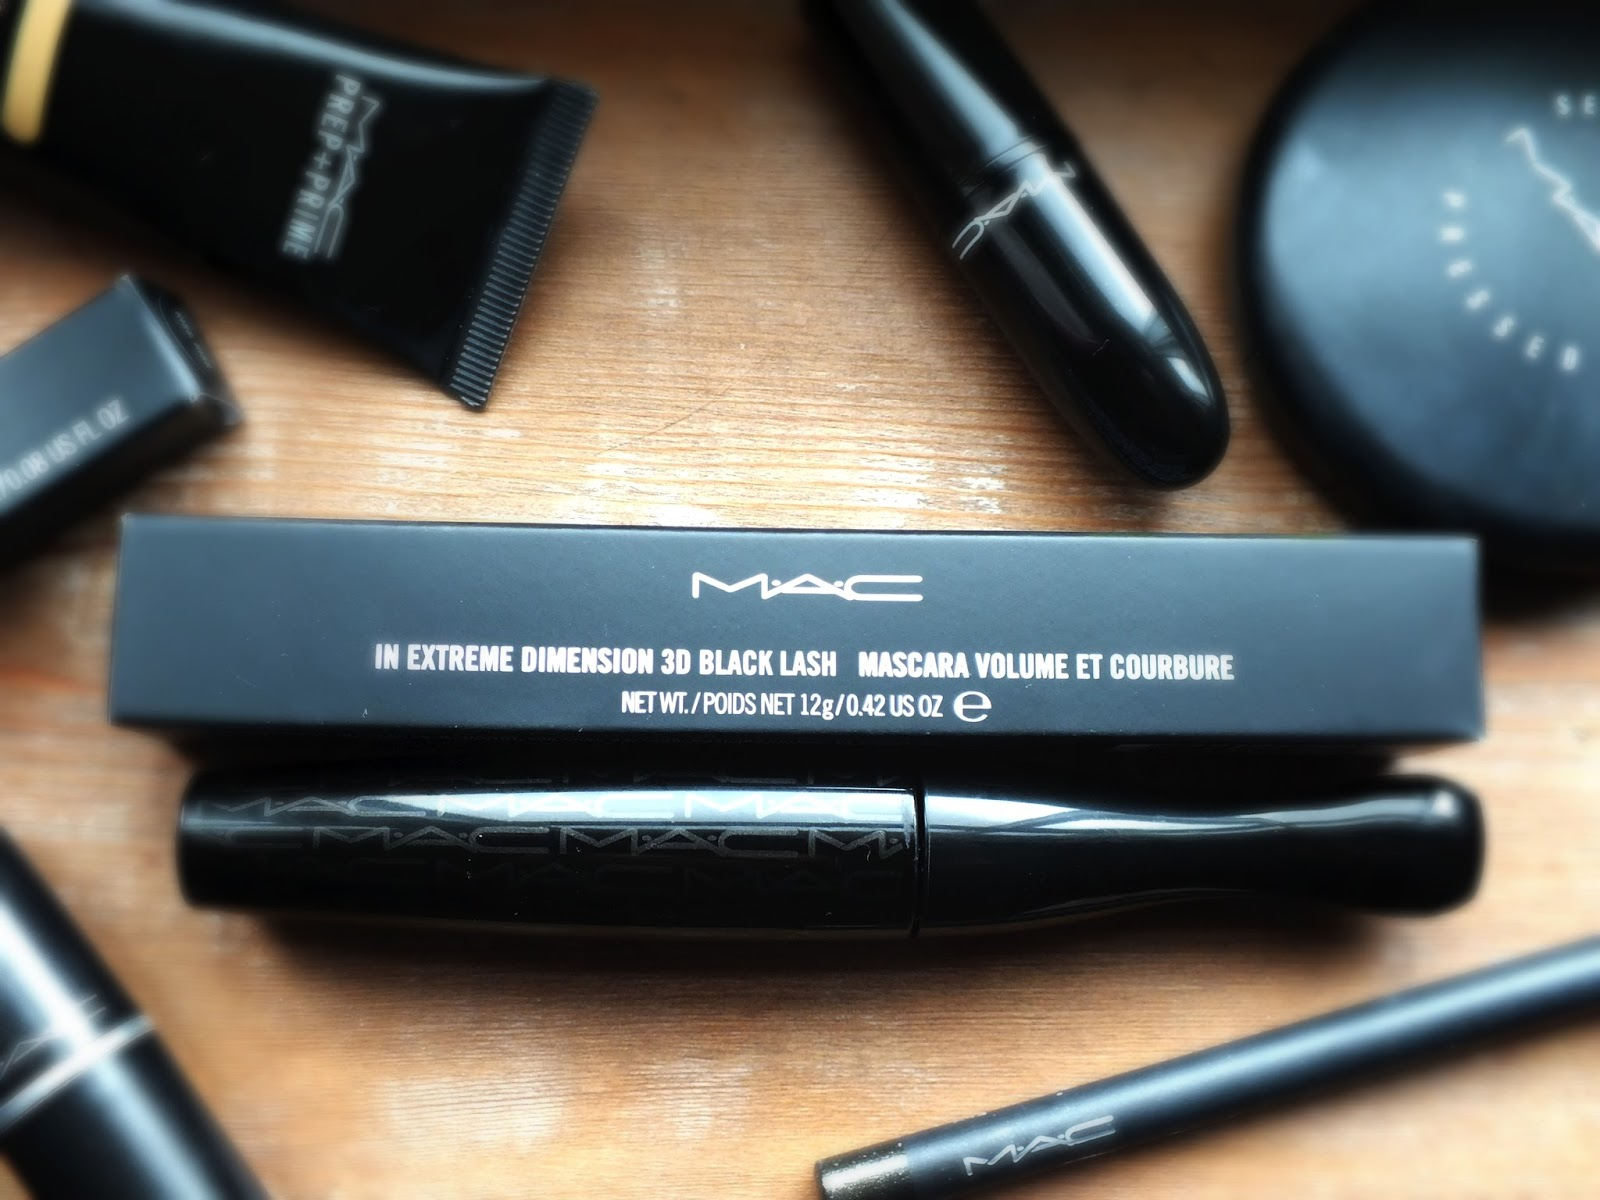 8ea6ef13b20 Hurrah MAC have released their new collections, just the right timing as I  needed a new mascara. Now in my last post I said I was going to stay away  from ...